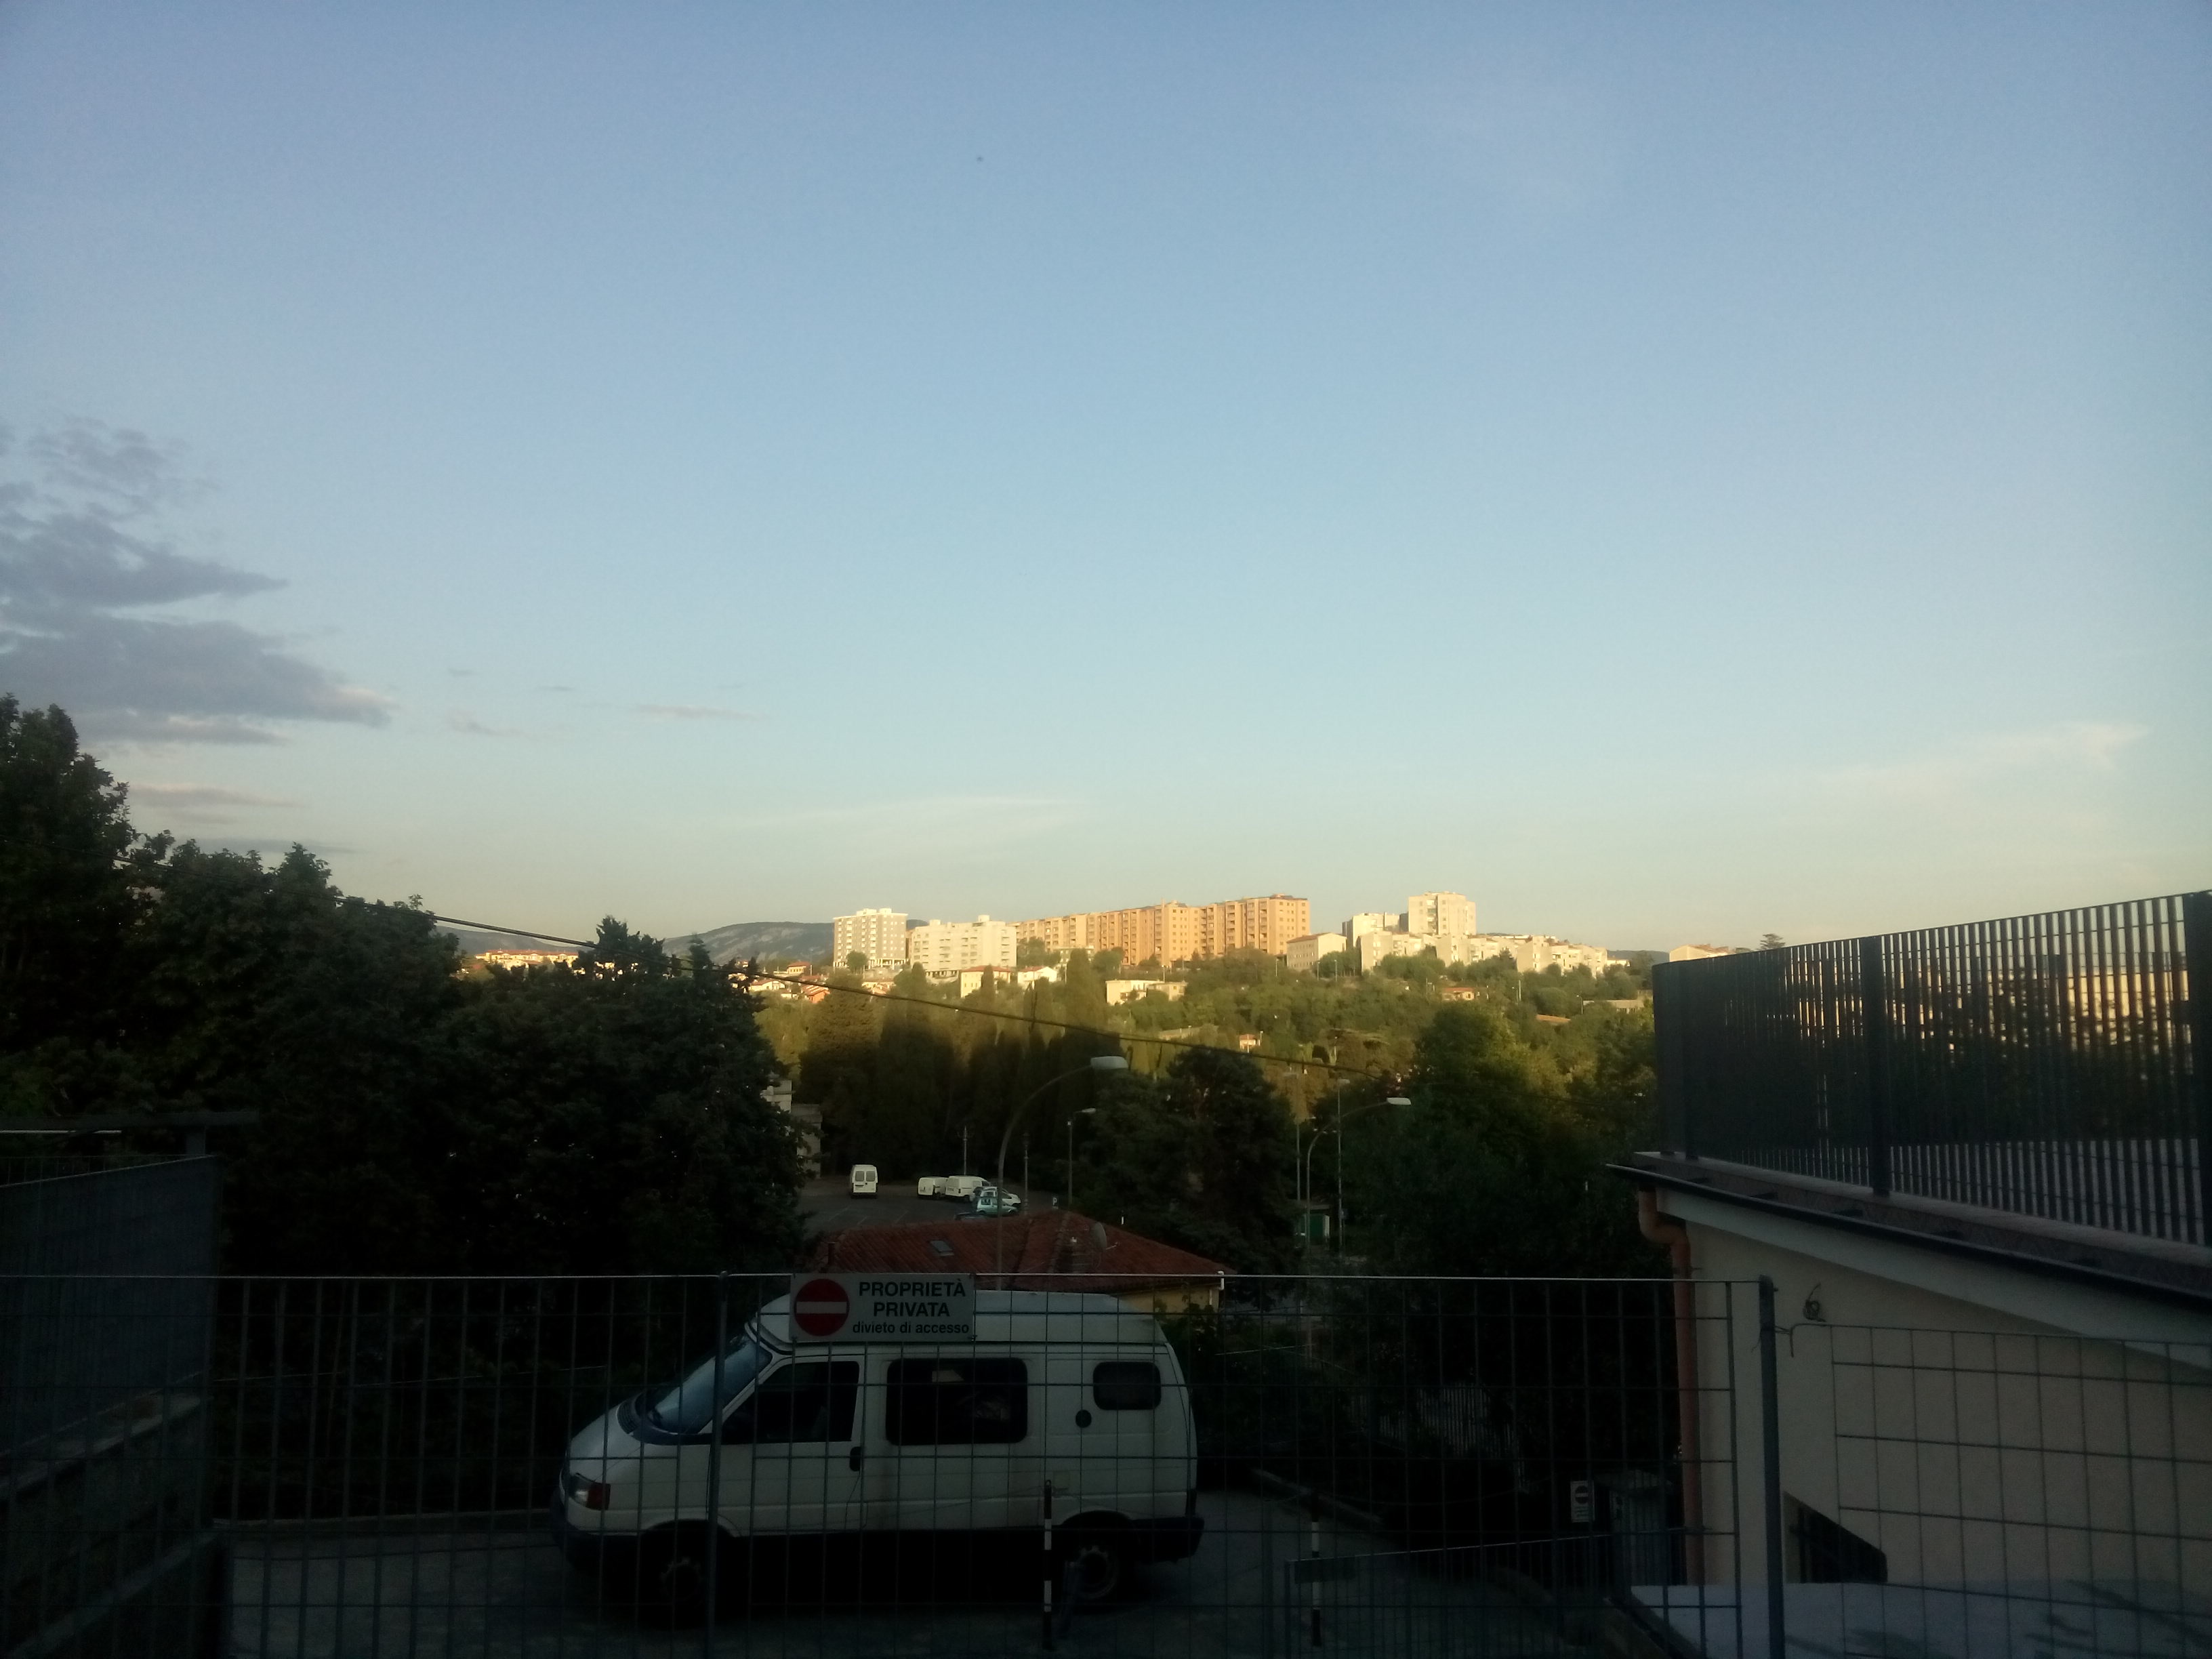 Blue sky, sun lighting up buildings on a distant hillside